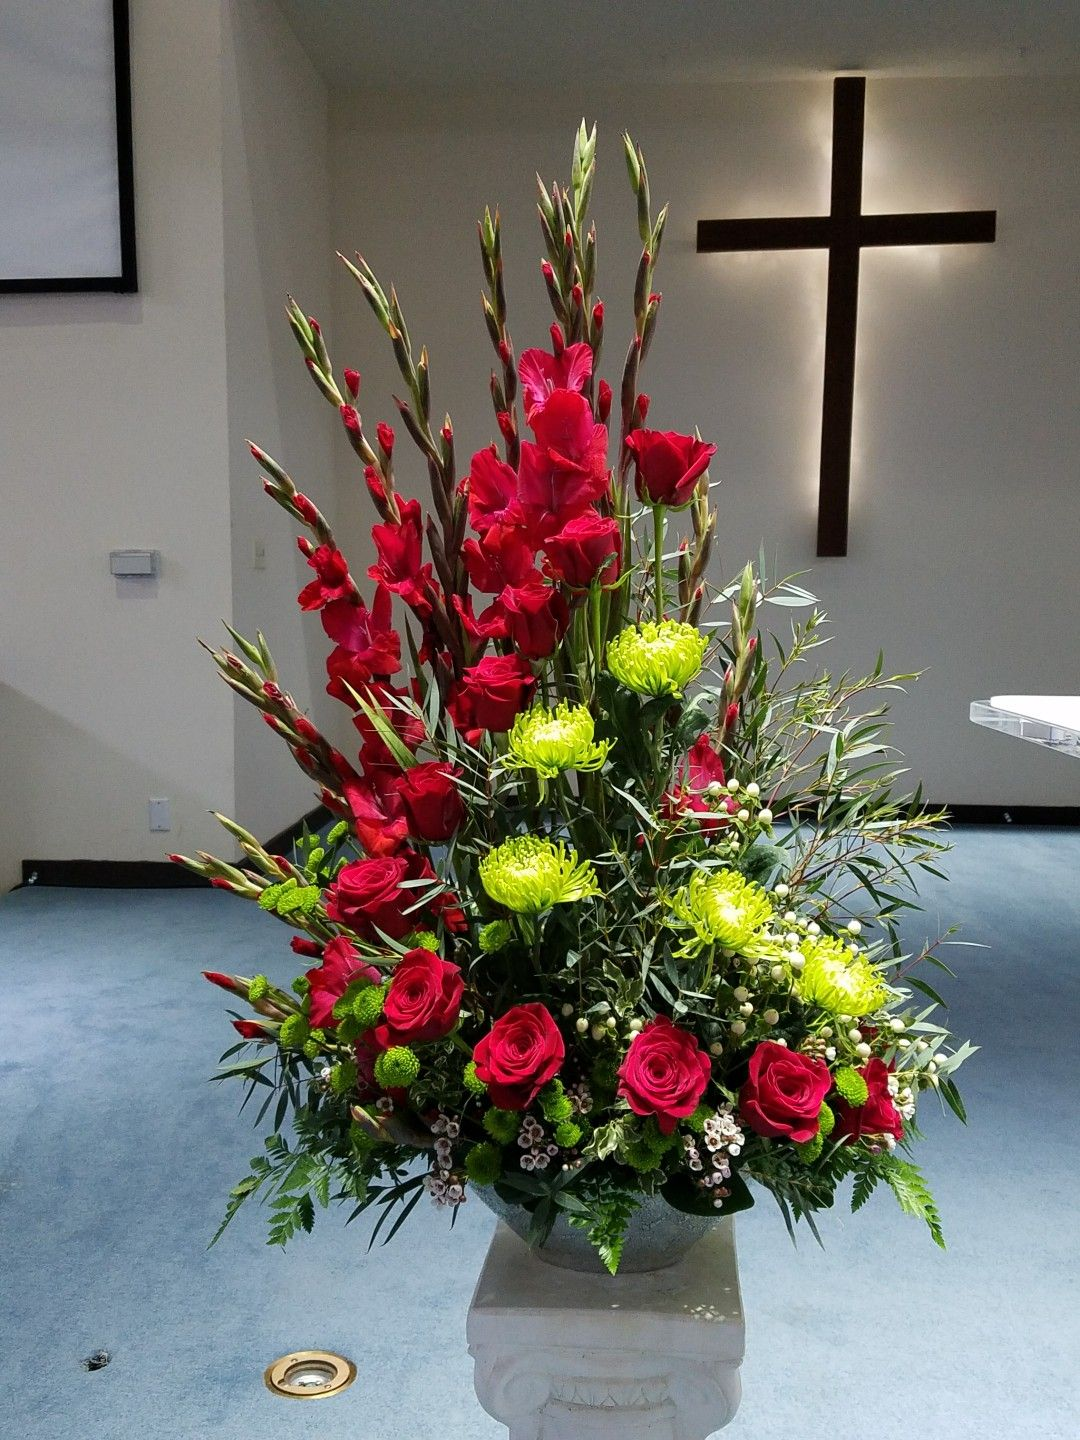 Pin By My Info On Flower Creations By Me Pinterest Flower